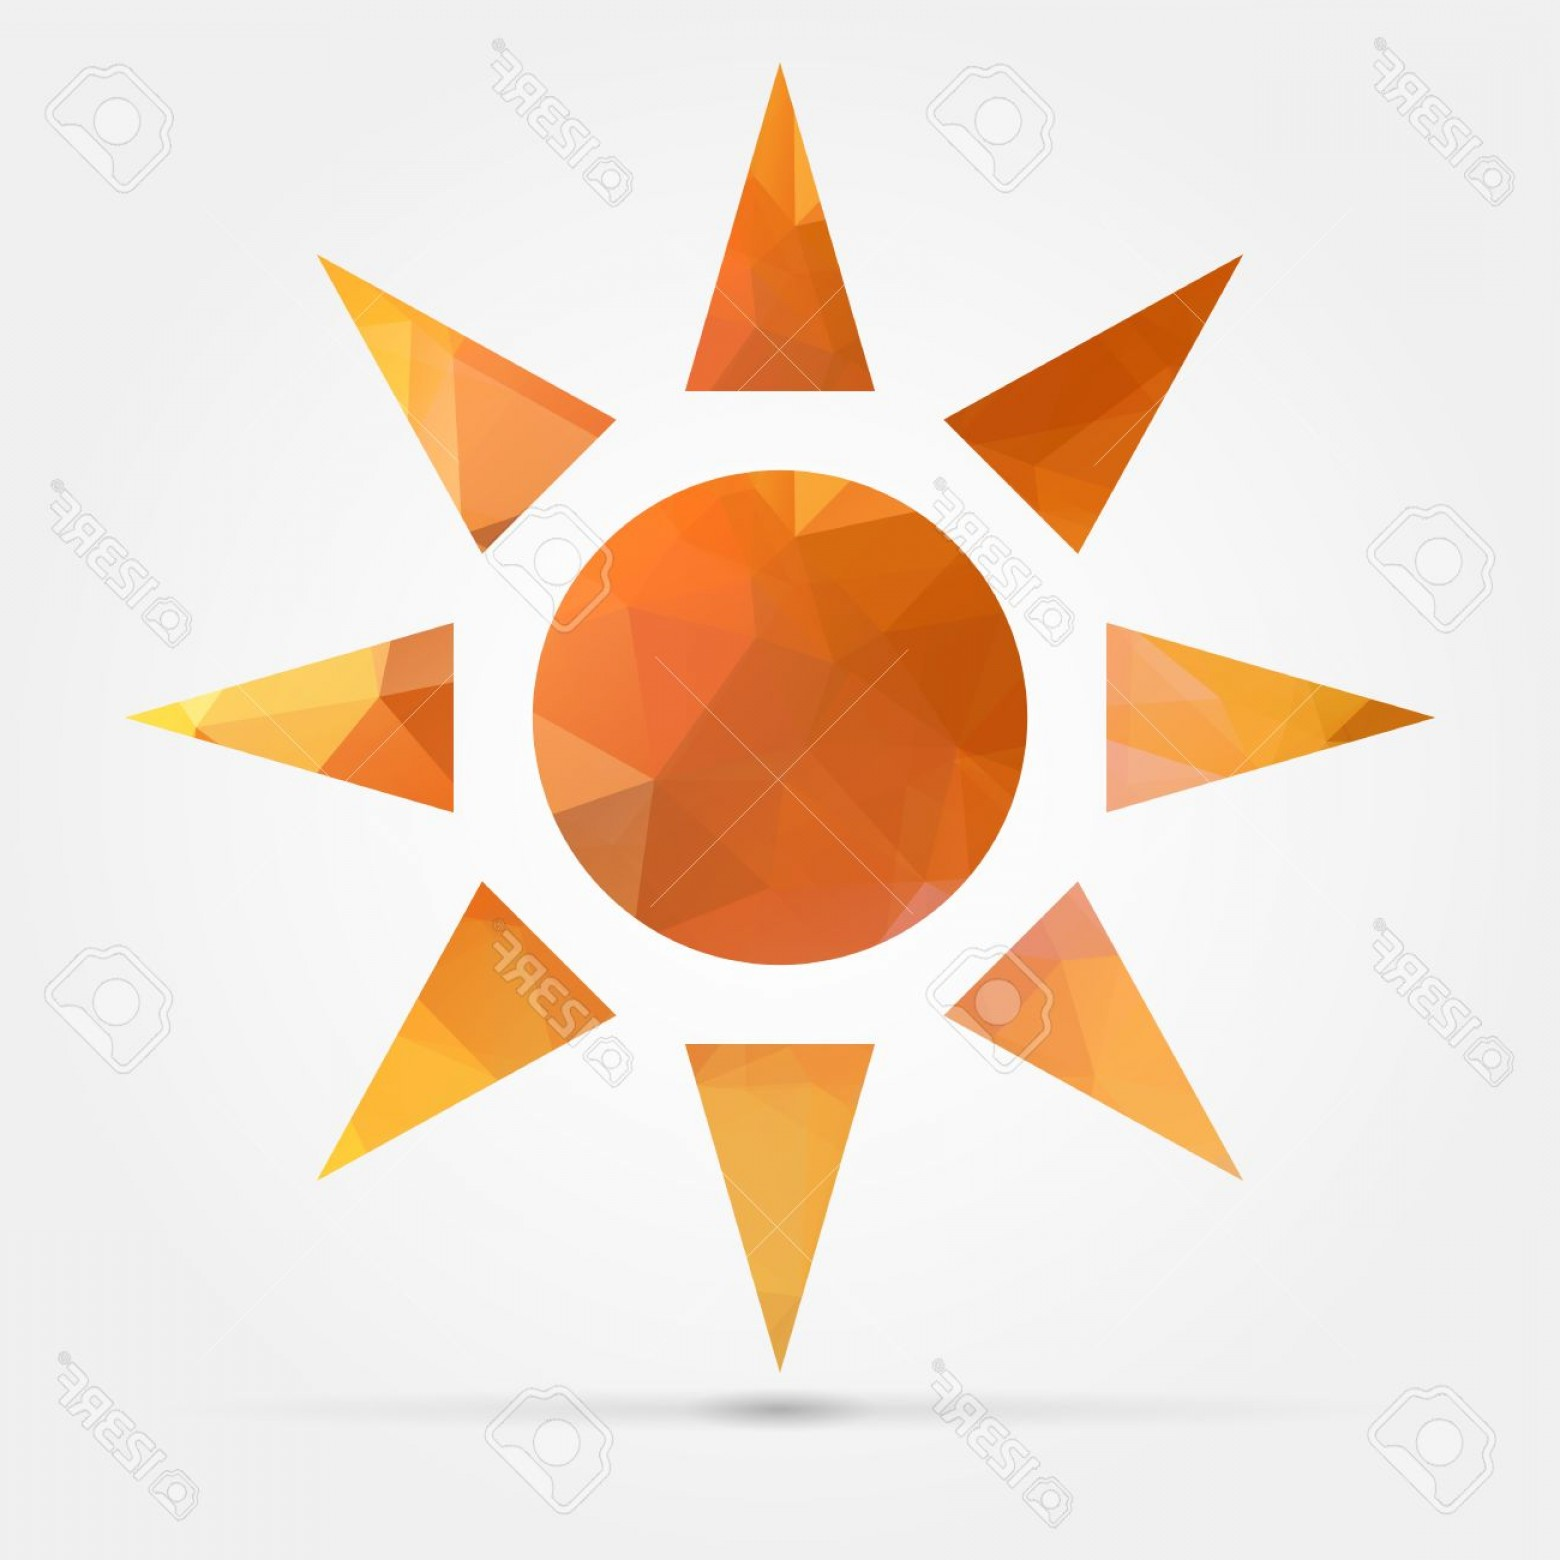 Geometric Sun Vector: Photostock Vector Abstract Geometric Orange Sun From Triangular Faces For Graphic Design